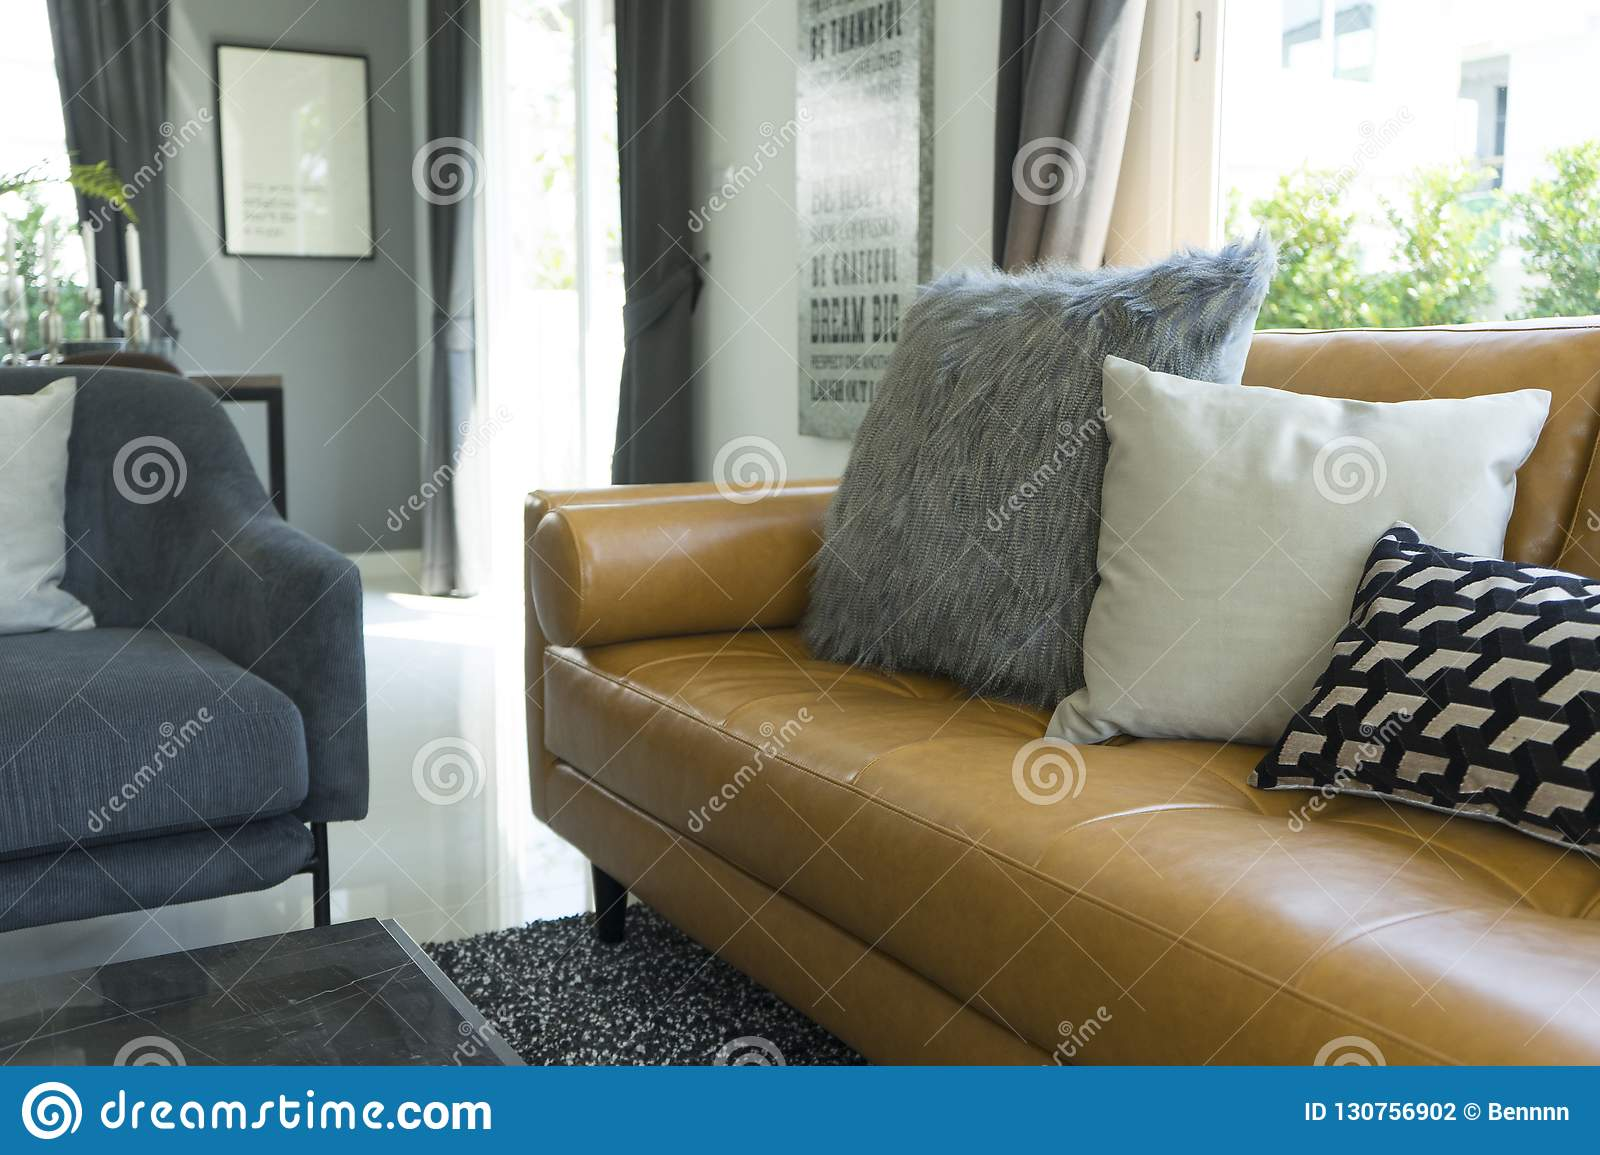 Groovy Cushion On Brown Leather Sofa In Living Room Stock Photo Machost Co Dining Chair Design Ideas Machostcouk